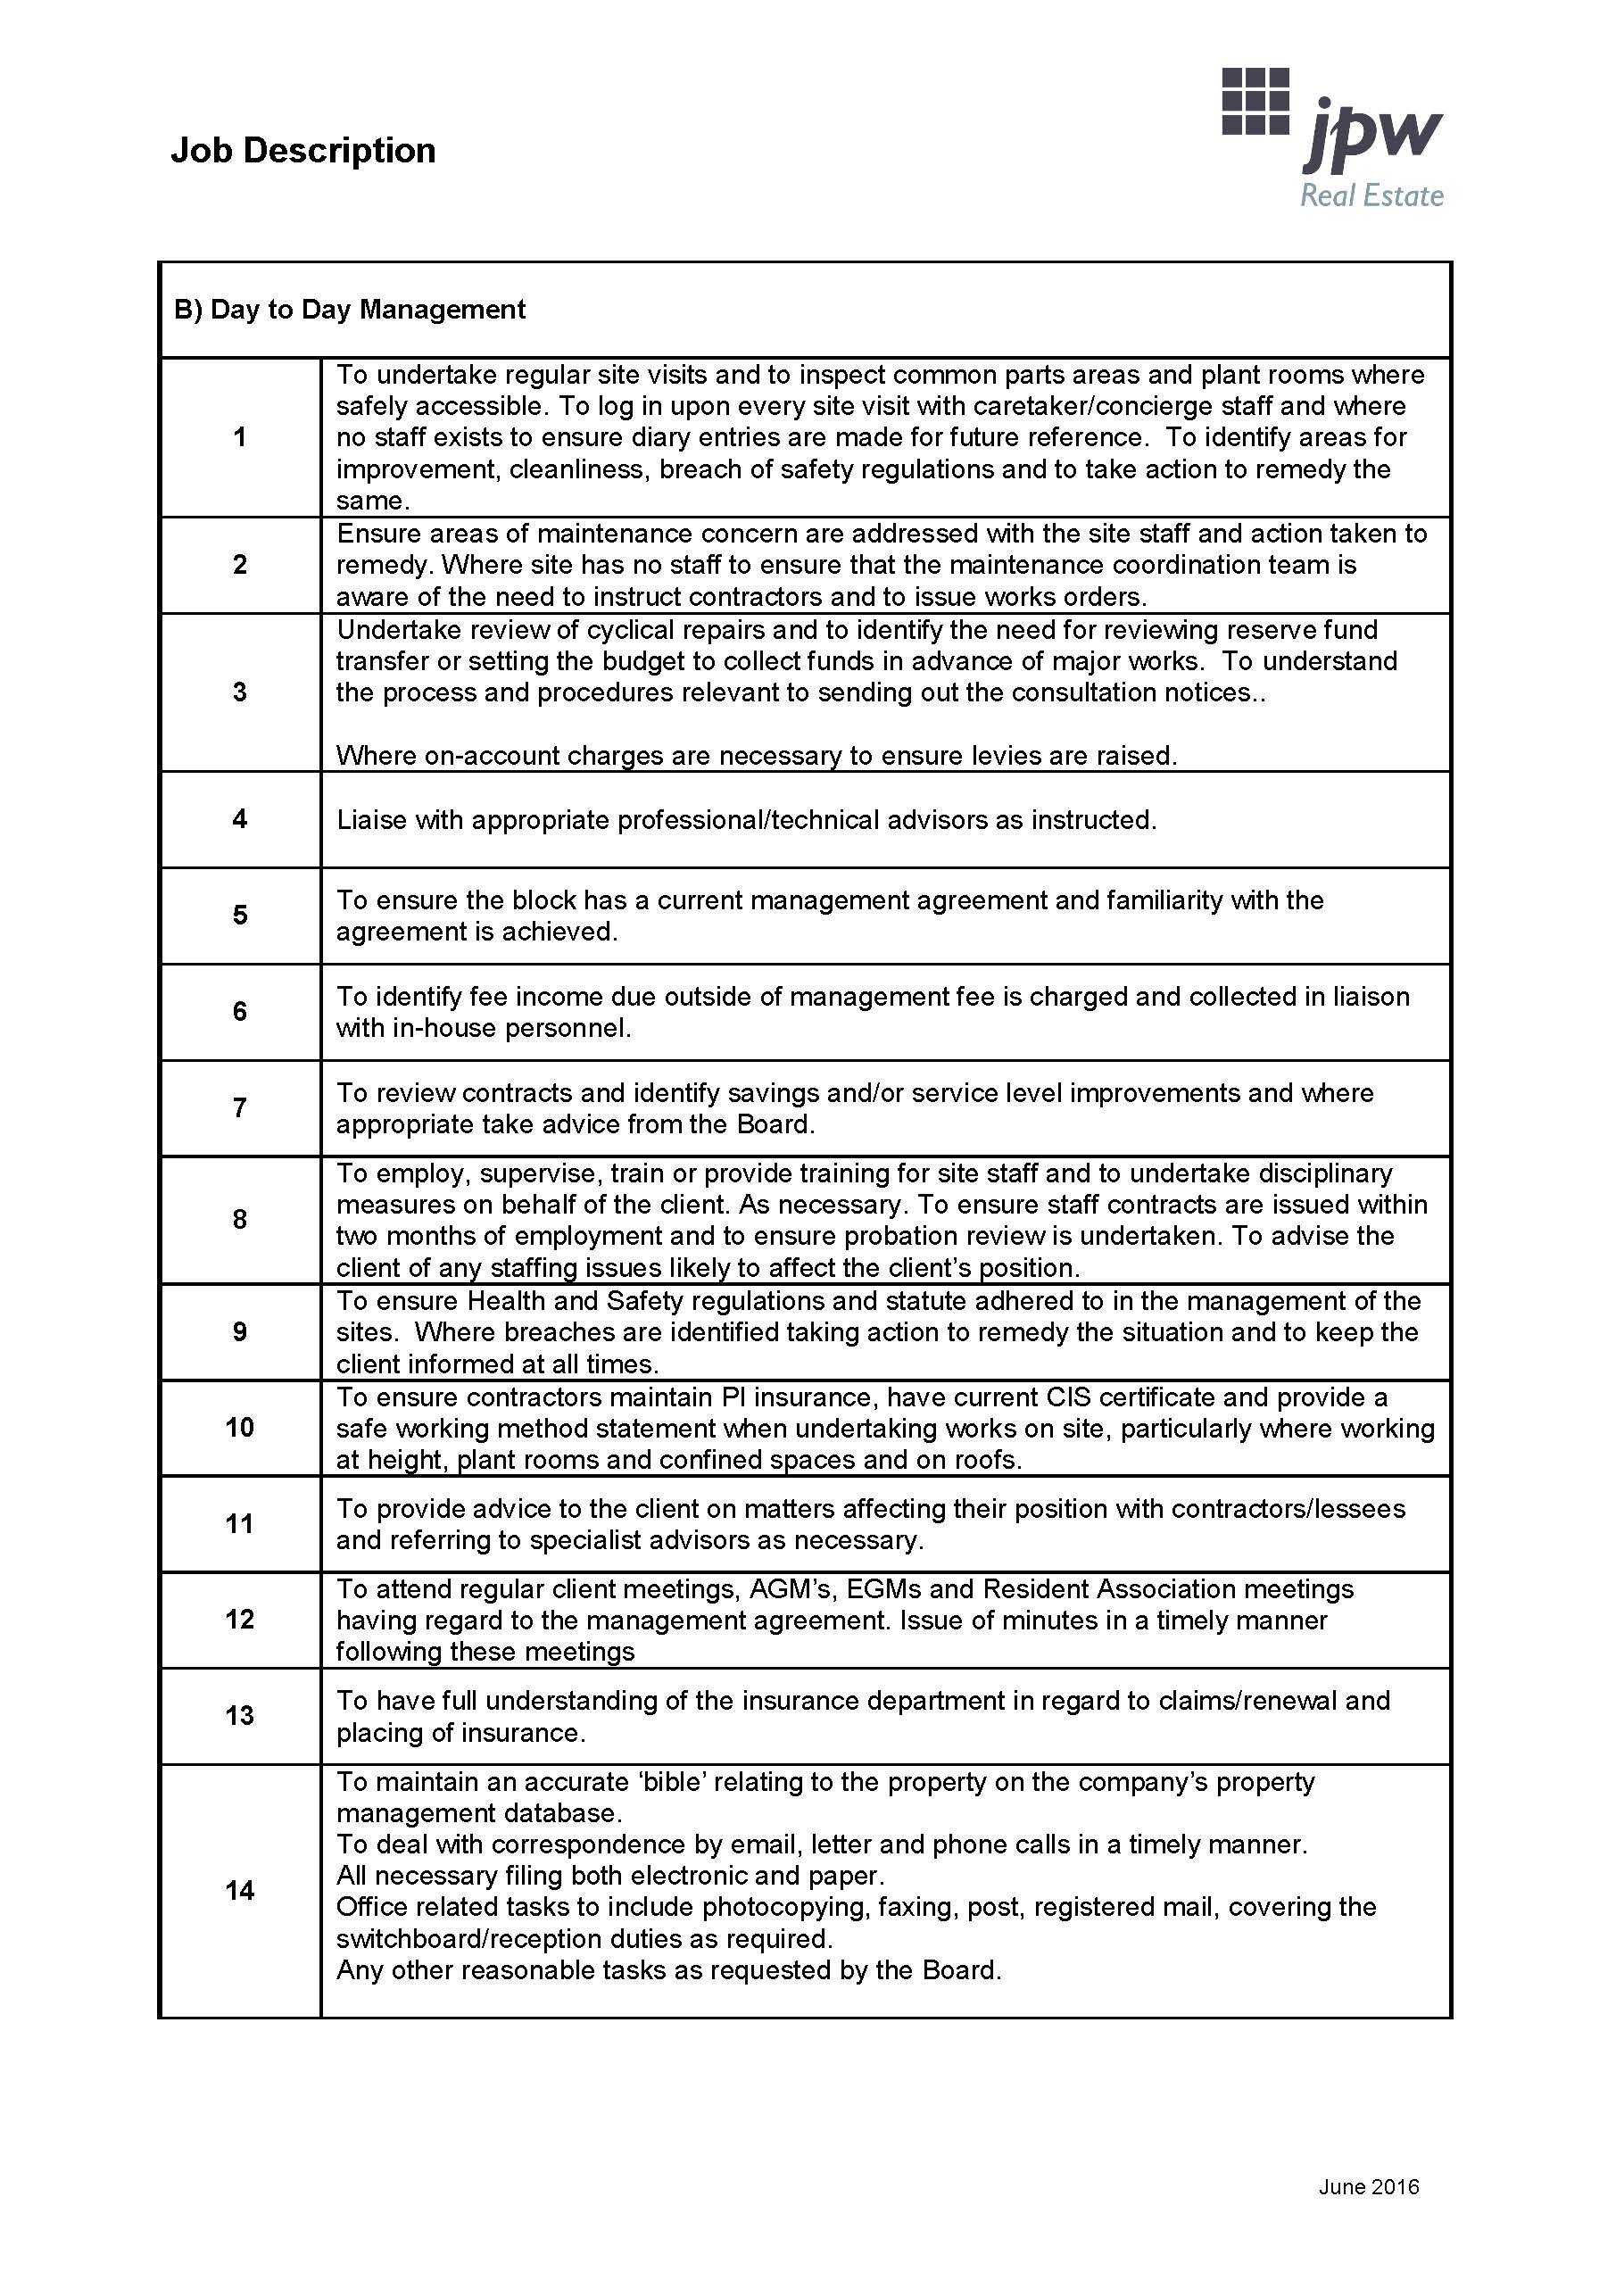 Job Description Property Manager Page 2